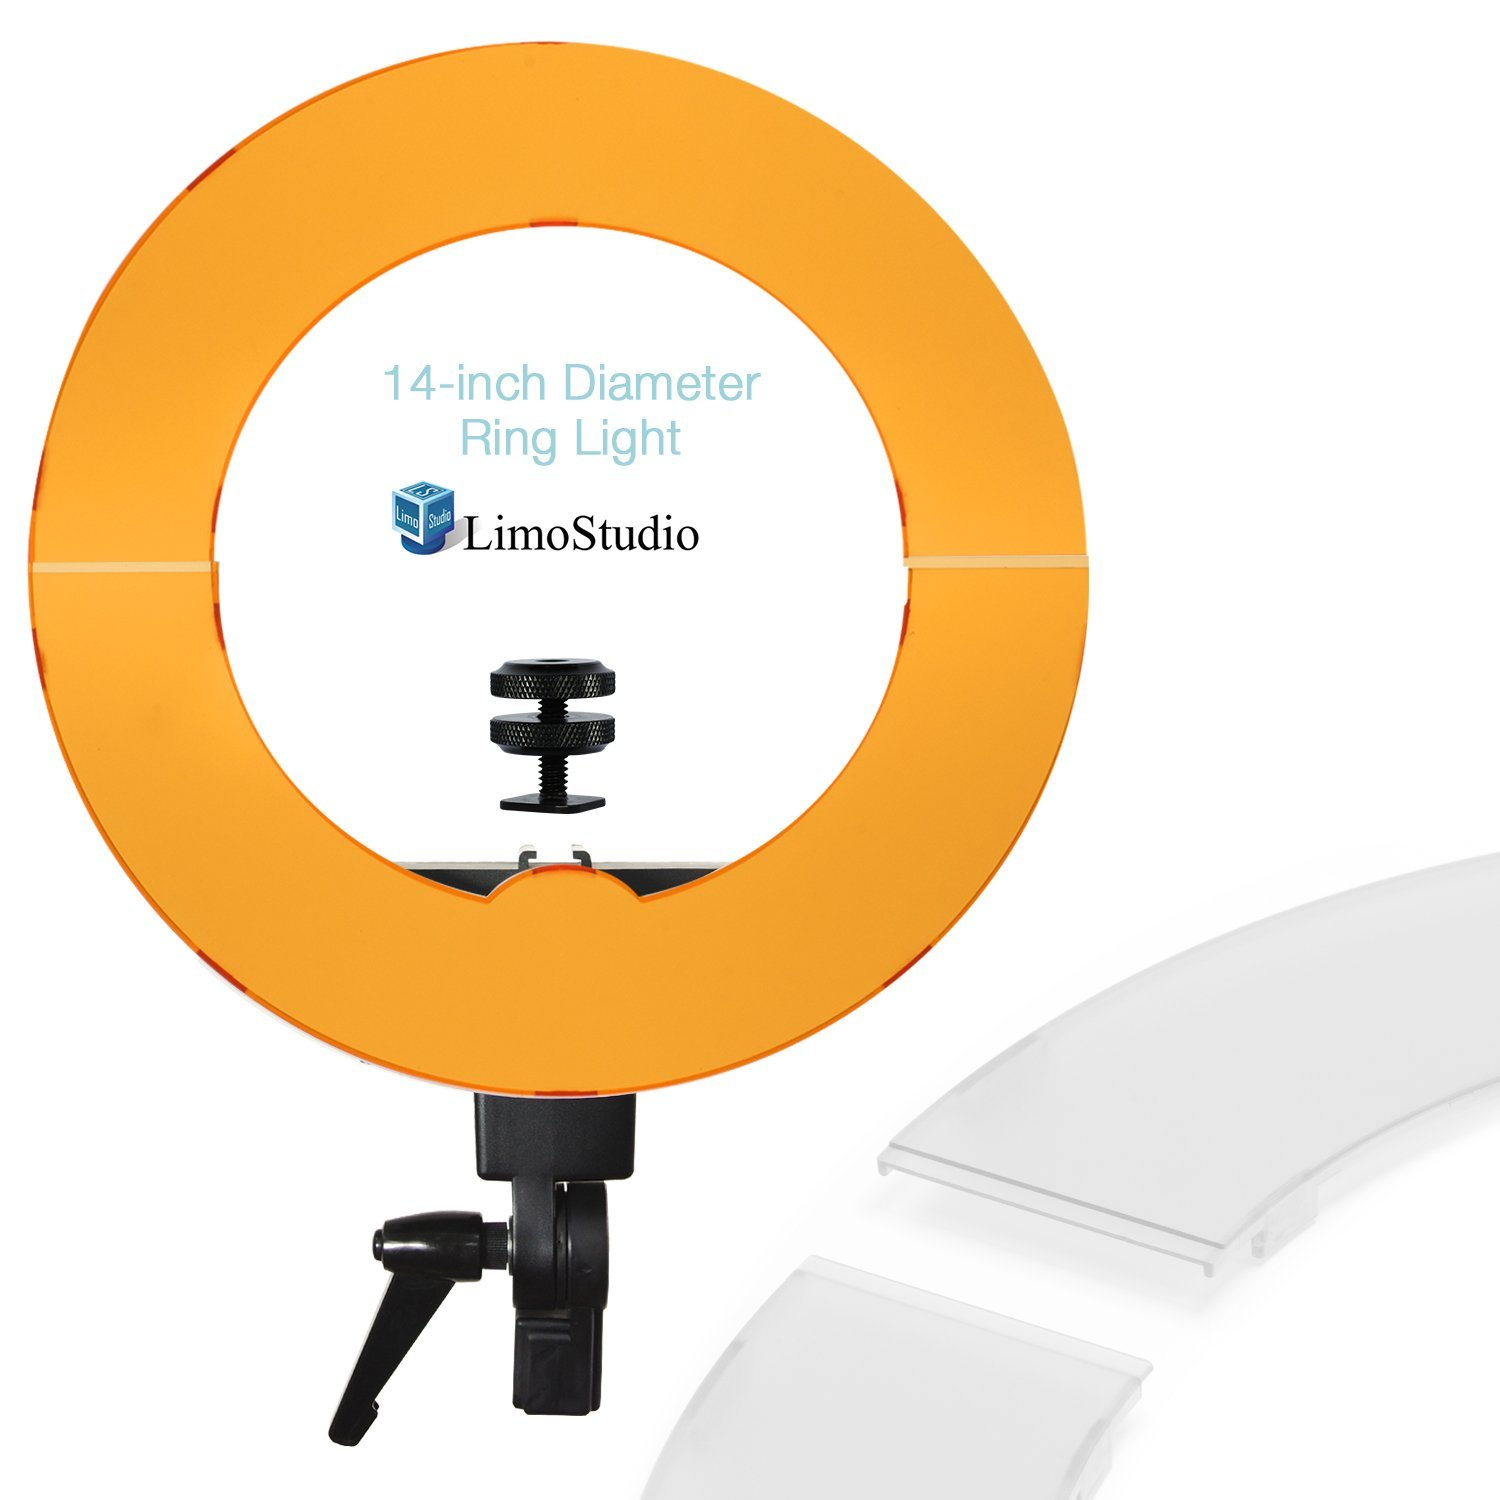 LimoStudio 14-inch Diameter LED Round Ring Light with 1/4 Hot Shoe Mount, Dimmable Continuous Lighting Kit with White and Orange Diffuser Hard Cover for Professional Photo Shoots, AGG2464